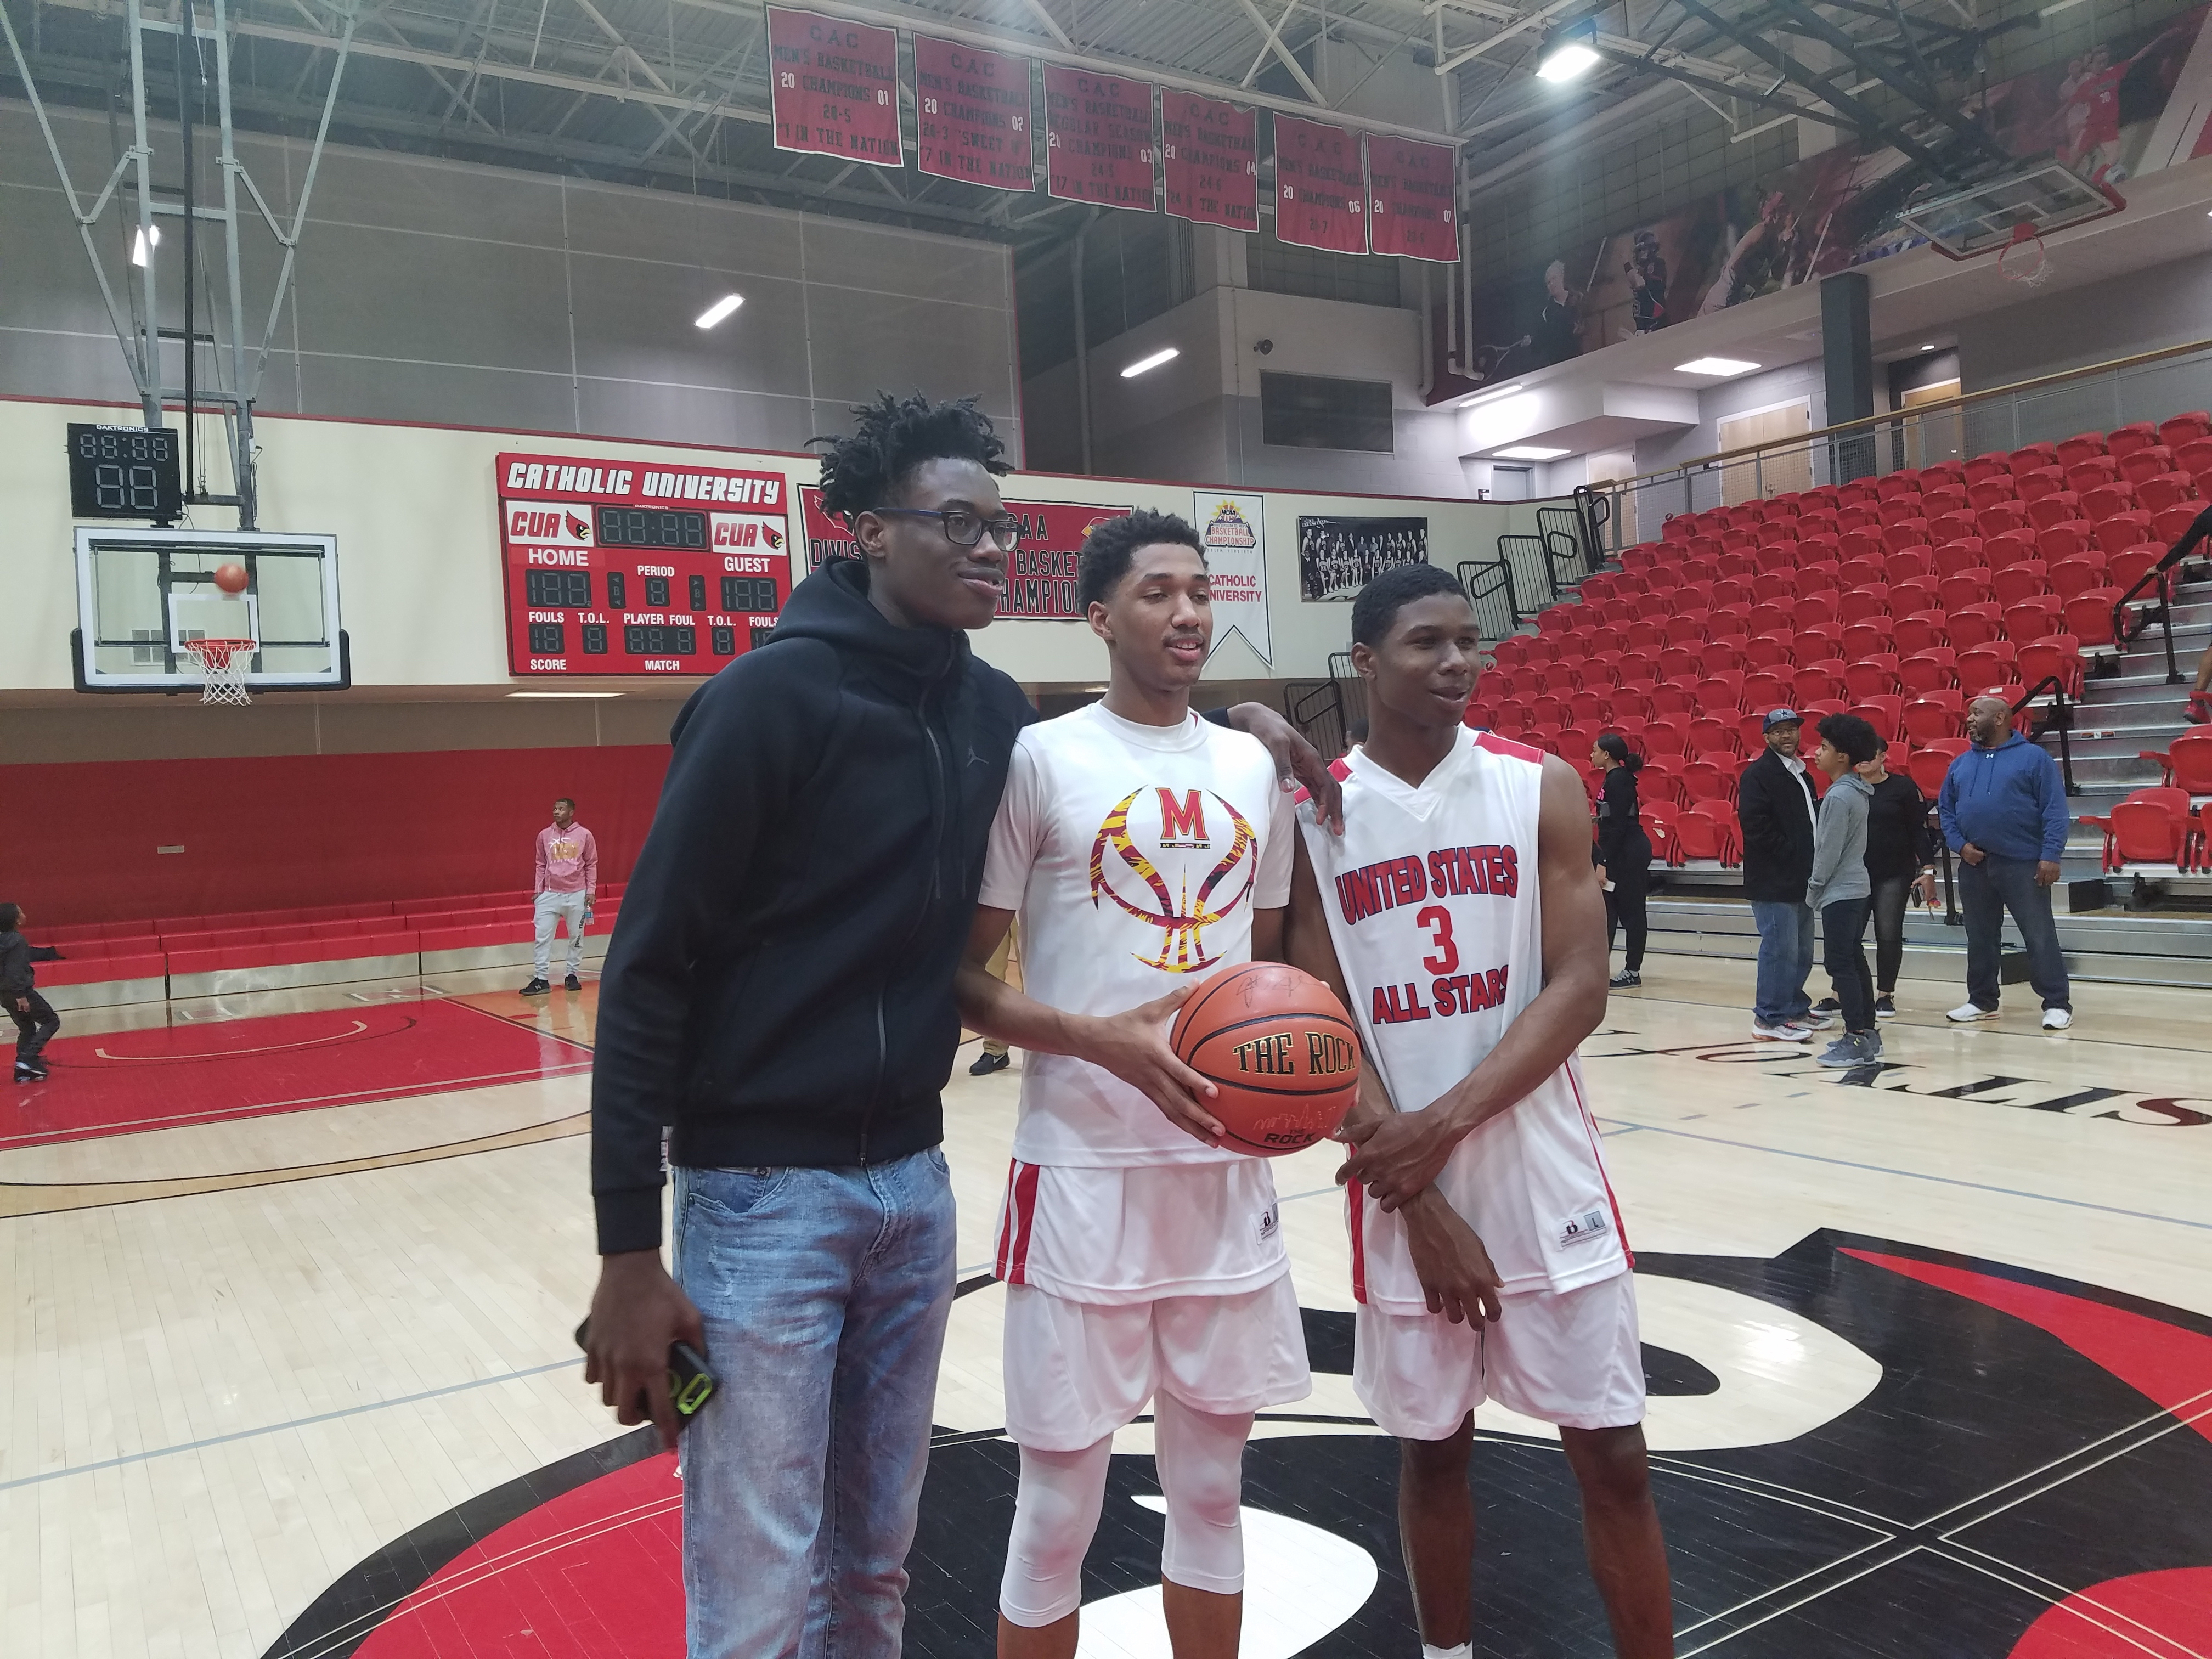 Andrew Wiggins, center, poses with fellow Maryland basketball recruits Jalen Smith, left, and Serrel Smith right, following Friday night's Capital Classic at Catholic University